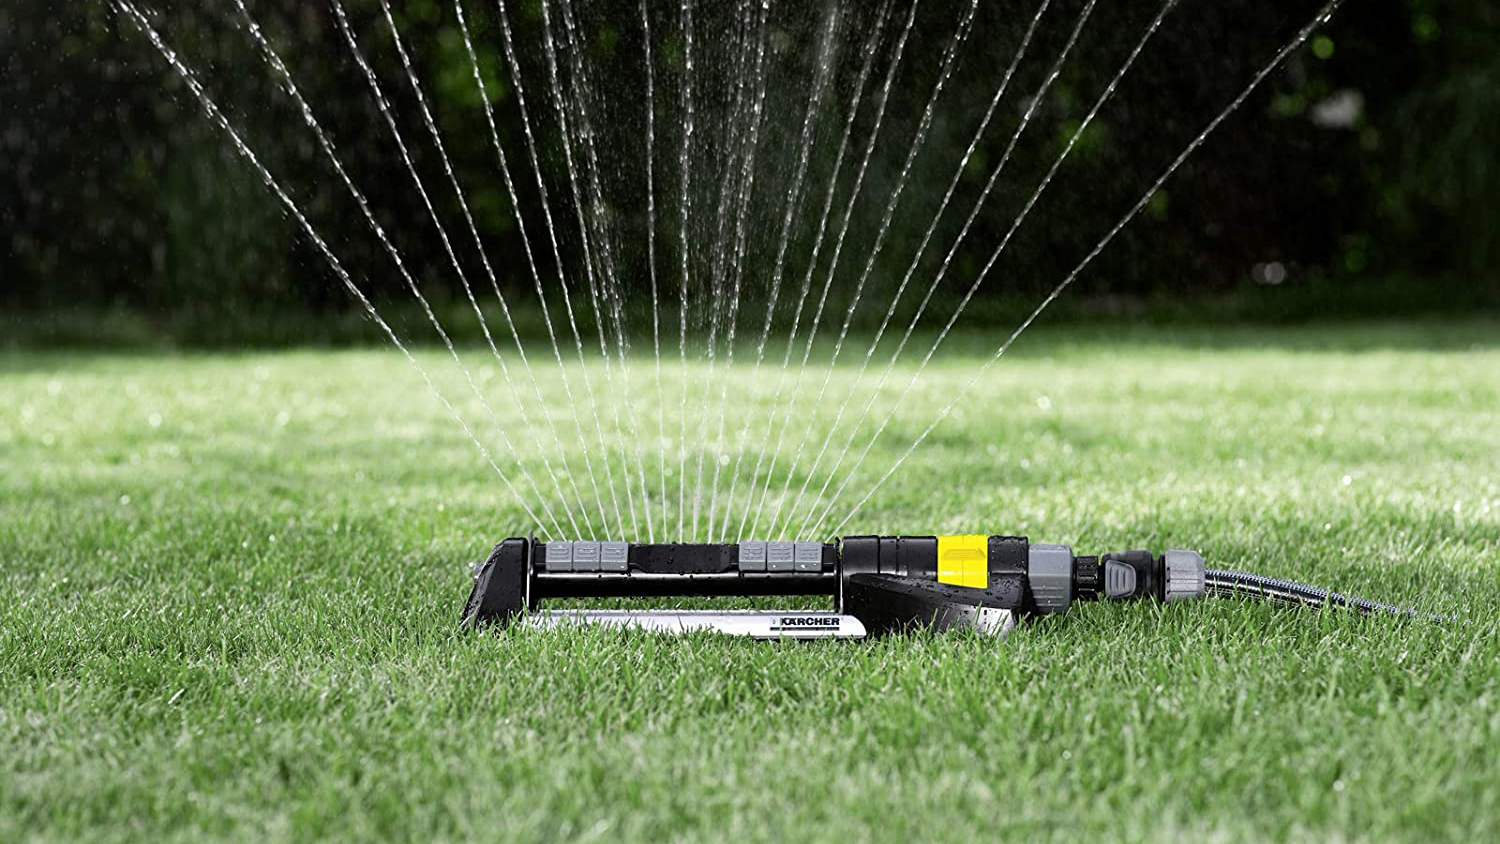 Best garden sprinkler 2021: water your home turf without hassles with the best lawn sprinklers | T3